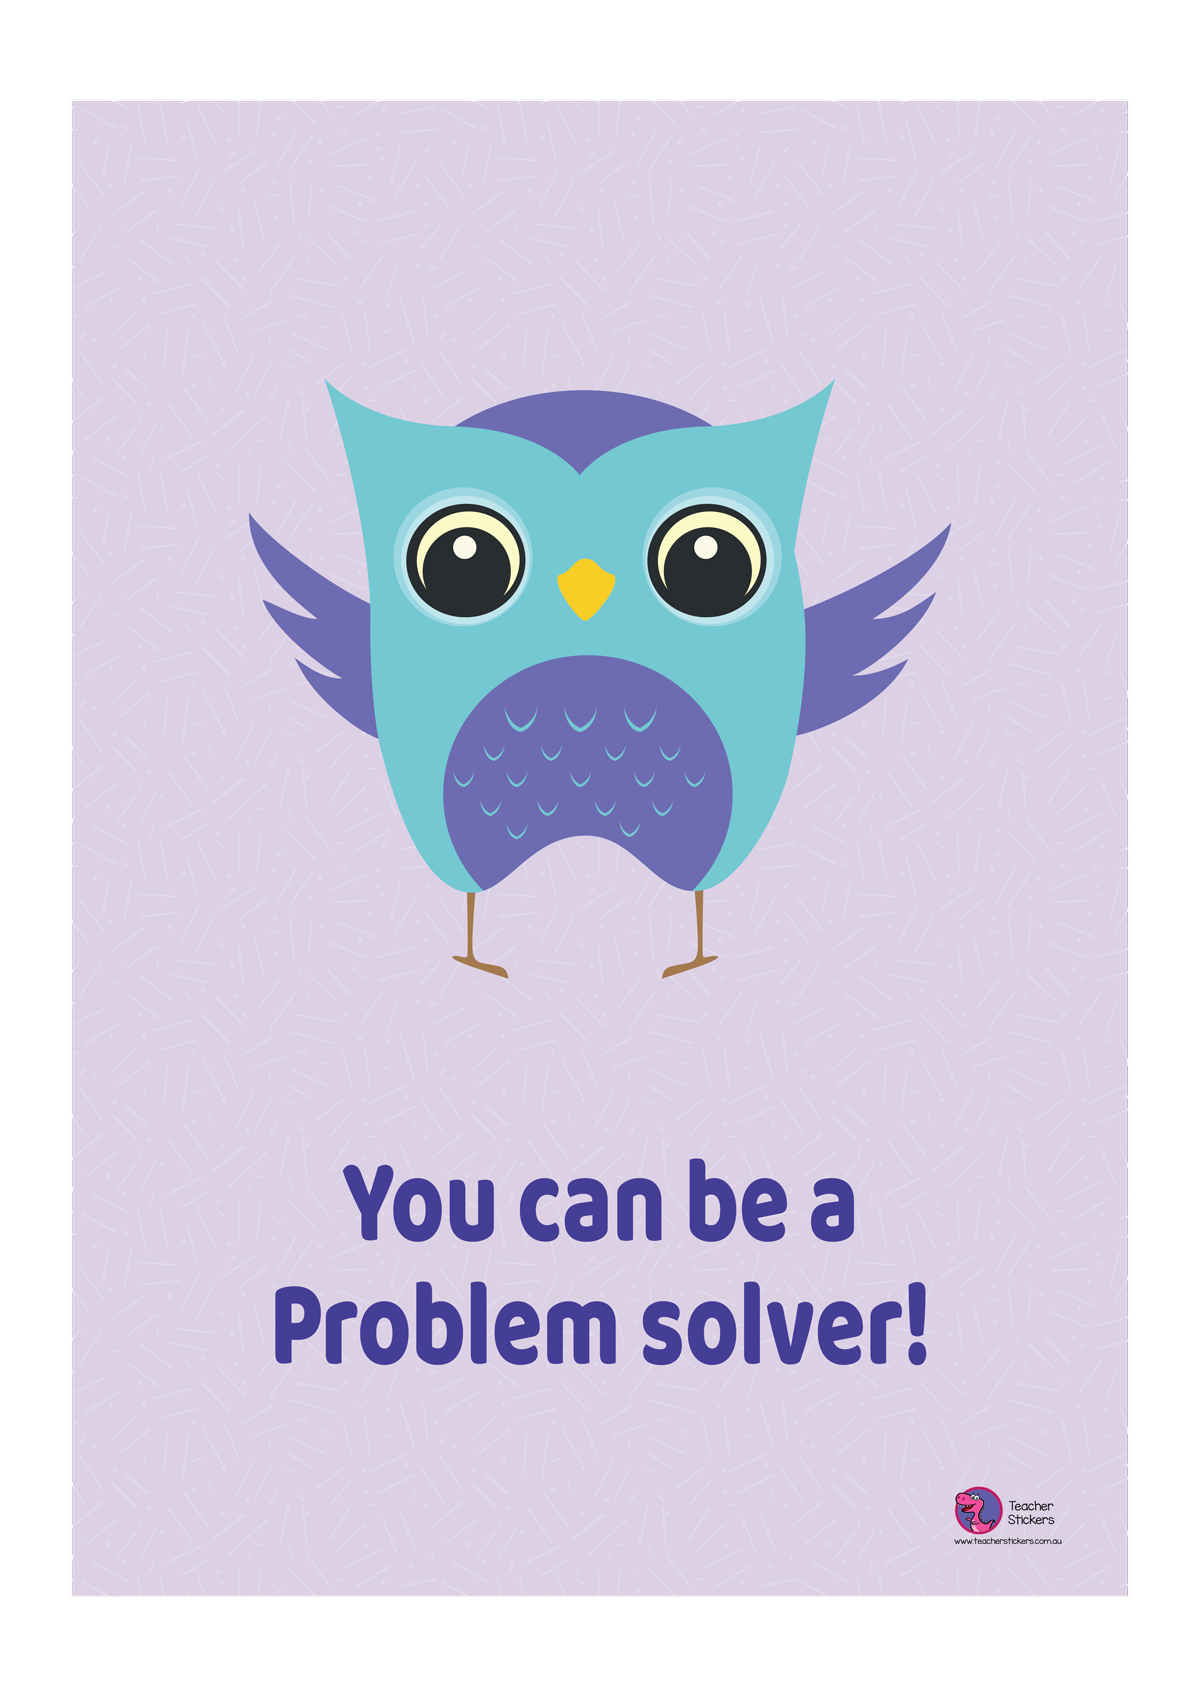 Owl-Poster-You-can-be-a-problem-solver